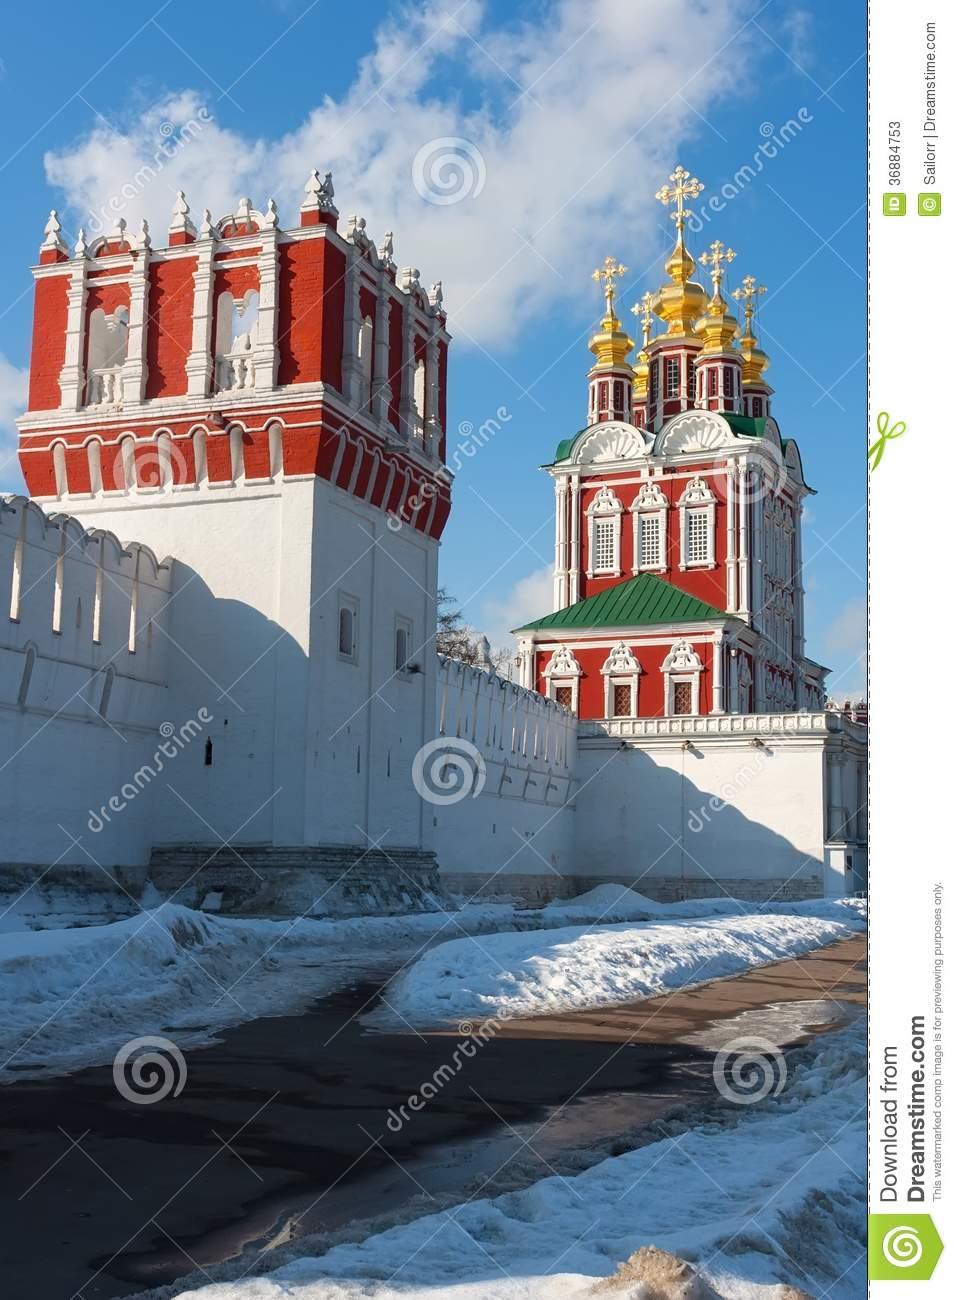 Download Convento di Novodevichy immagine stock. Immagine di famoso - 36884753